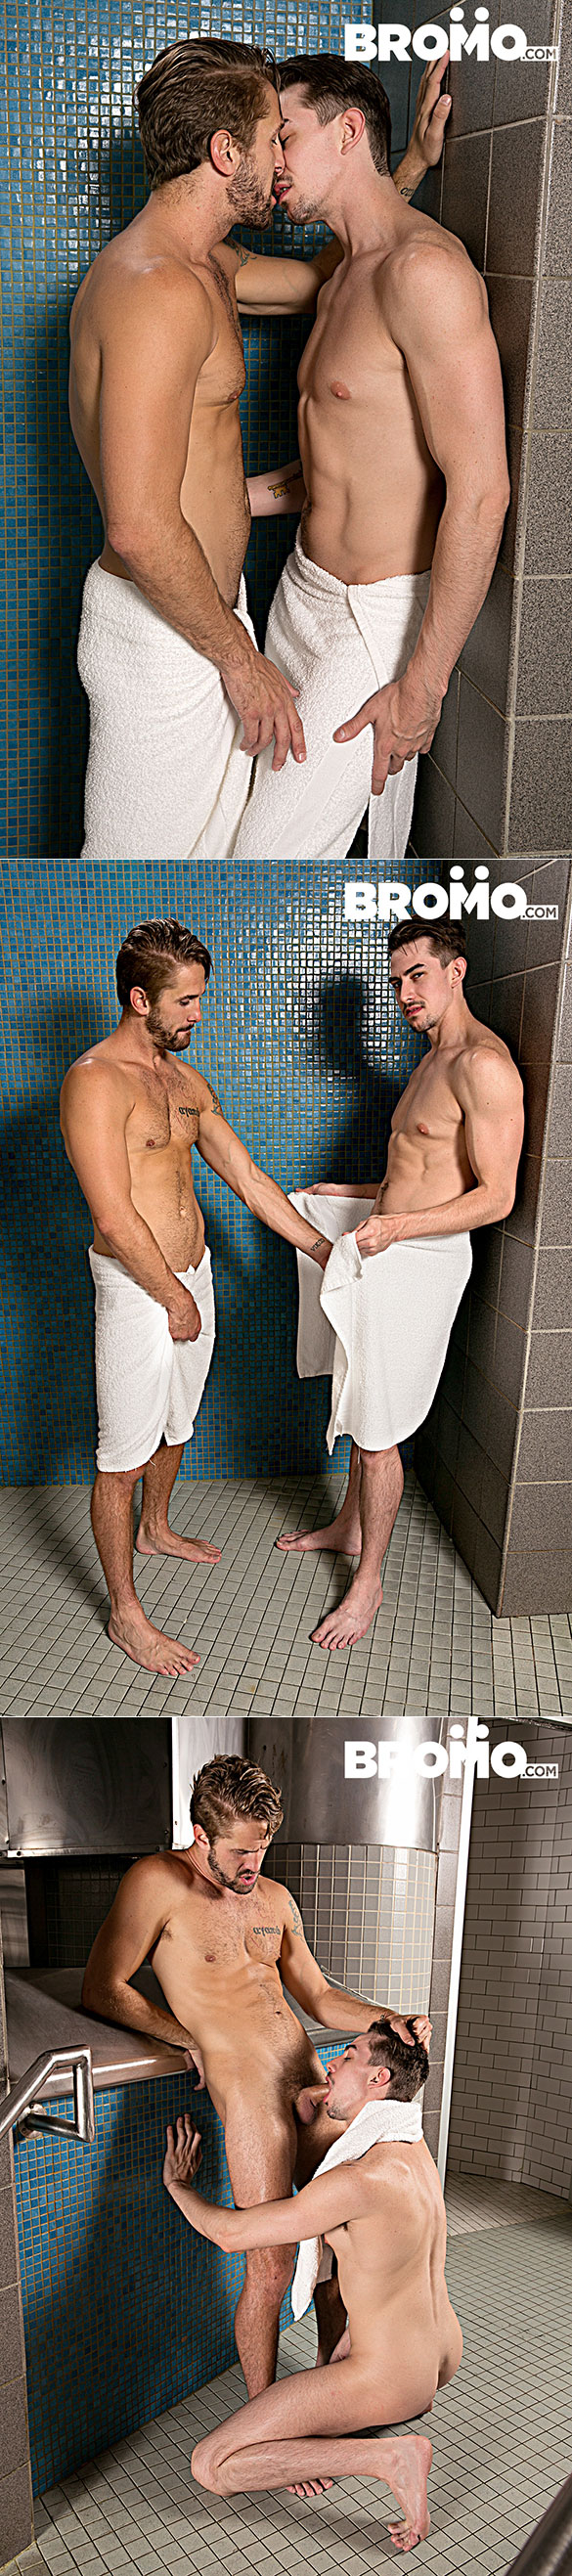 """Bromo: Wesley Woods and Jack Hunter bang each other bareback in """"The Steam Room, Part 3"""""""